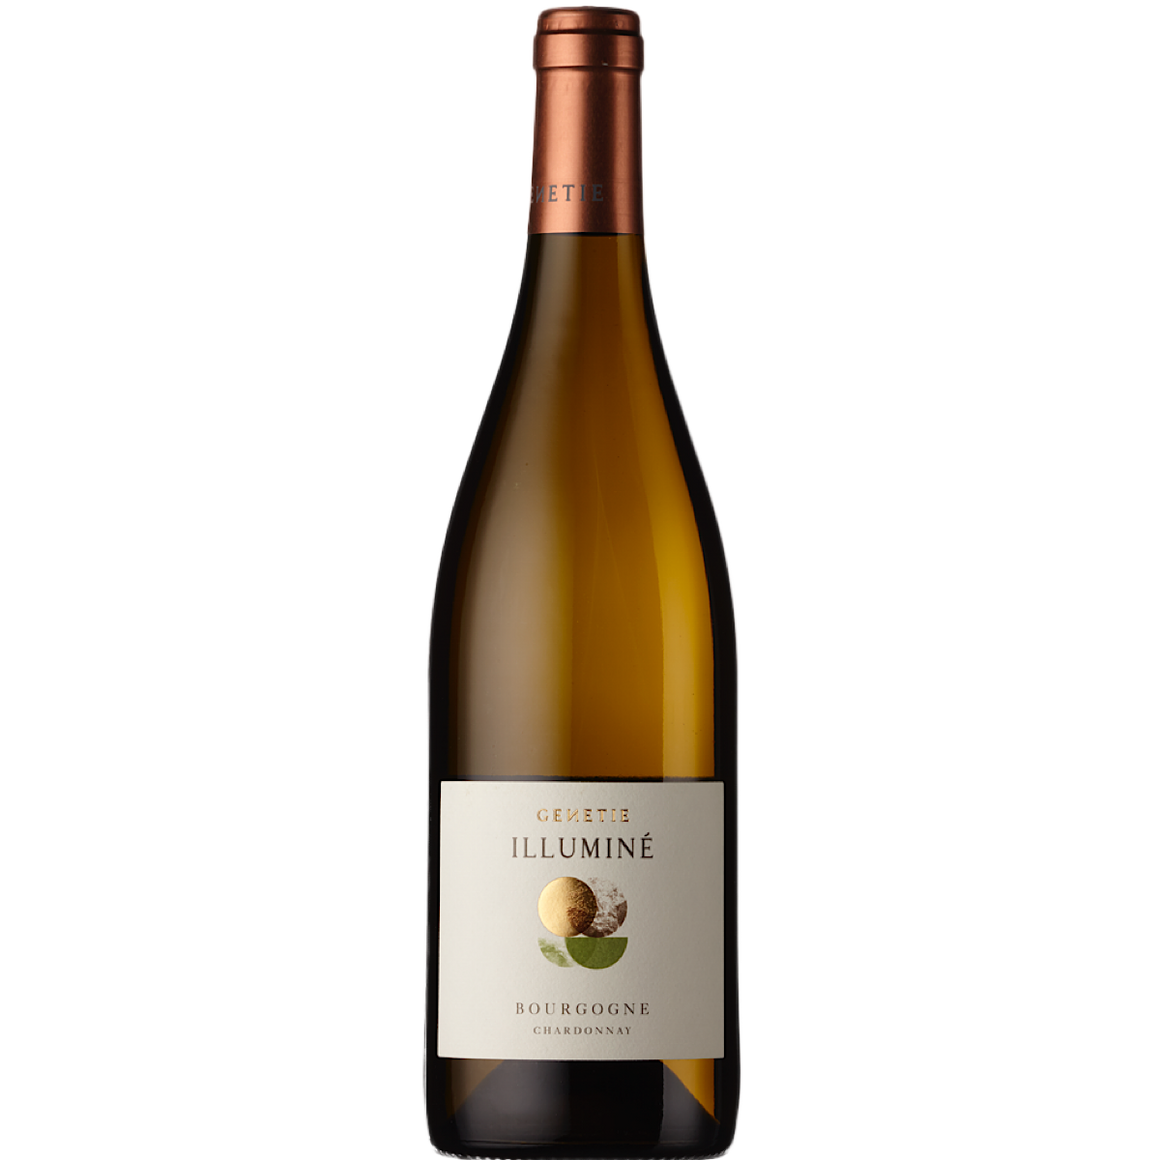 GENETIE Bourgogne Chardonnay 'Illuminé' 6 Bottle Case 75cl